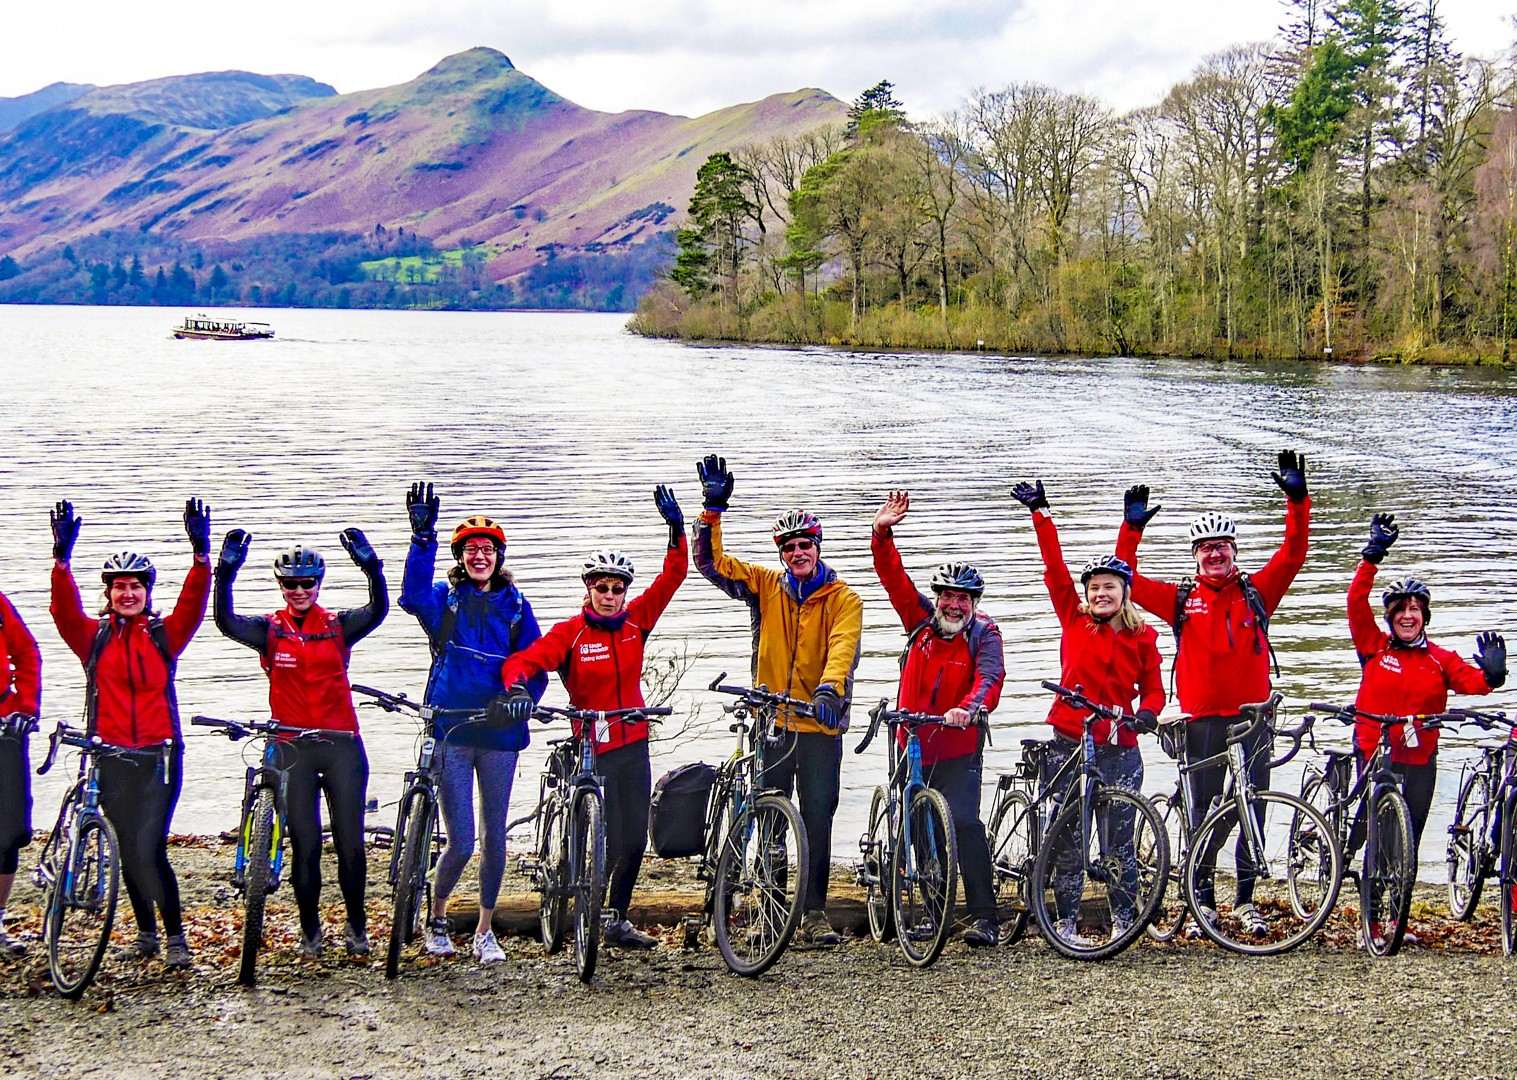 Lesiure riders beside Derwentwater-2.jpg - UK - Lake District - Derwent Water - Guided Leisure Cycling Holiday - Leisure Cycling